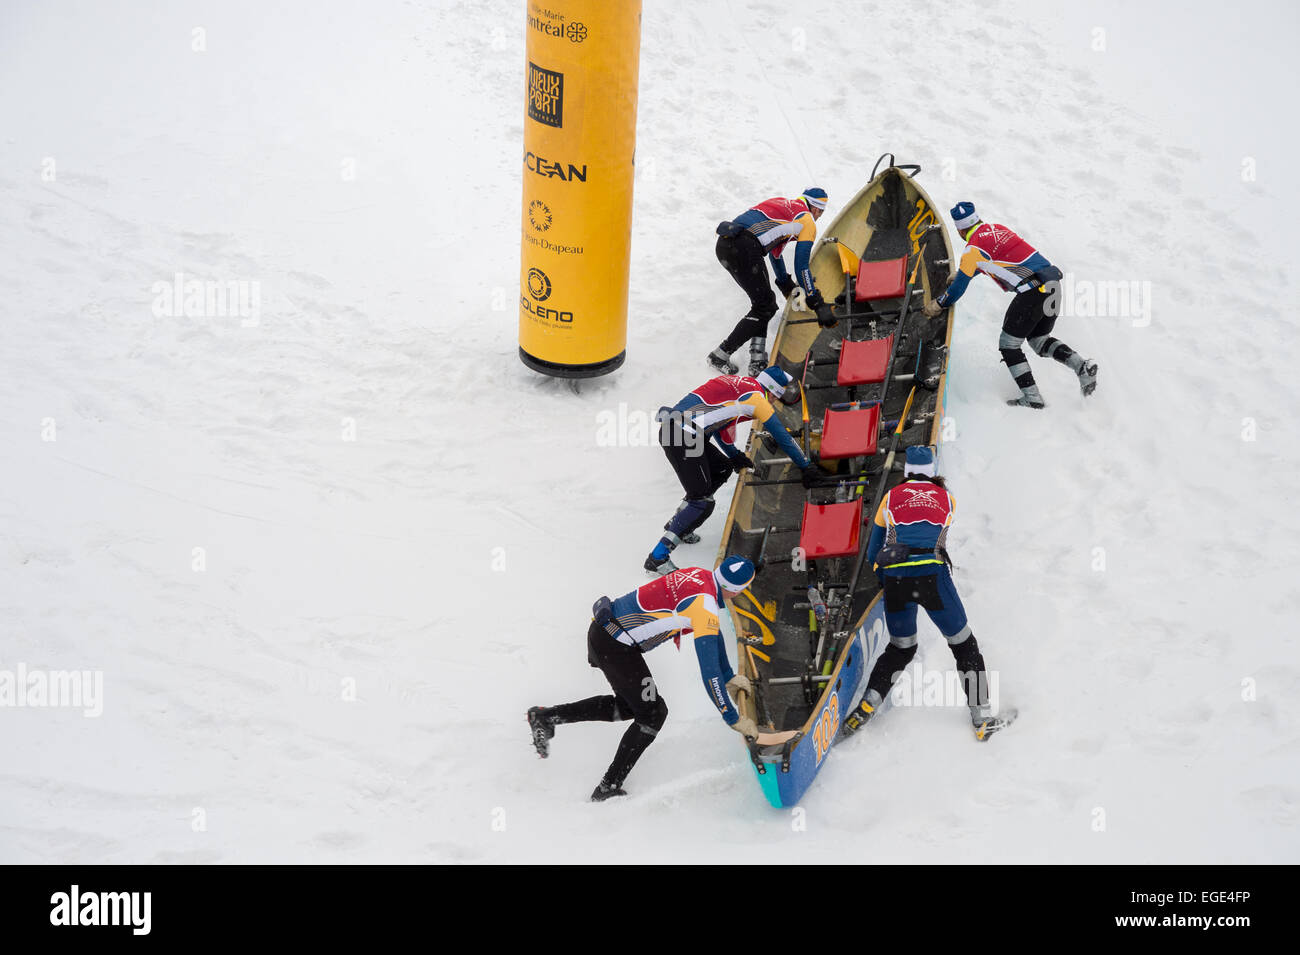 MONTREAL - FEBRUARY 21, 2015. A team progresses on the ice at the Montreal Ice Canoe Challenge - Stock Image